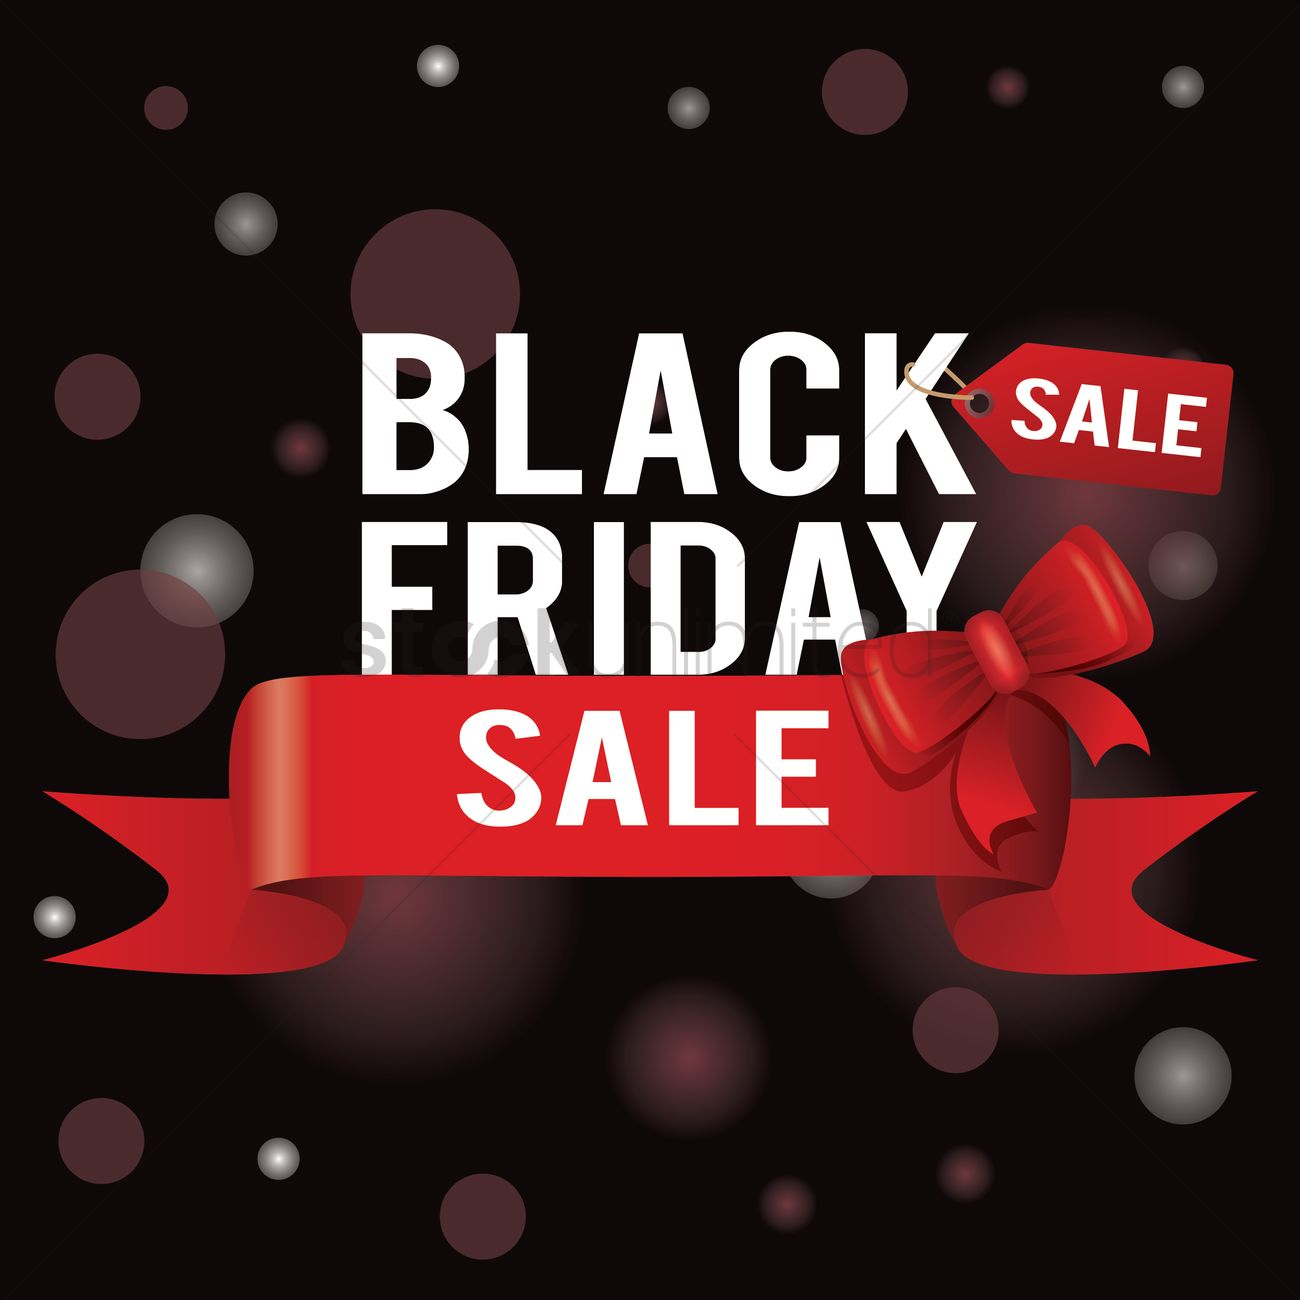 Black Sale Black Friday Sale Wallpaper Vector Image 1583200 Stockunlimited